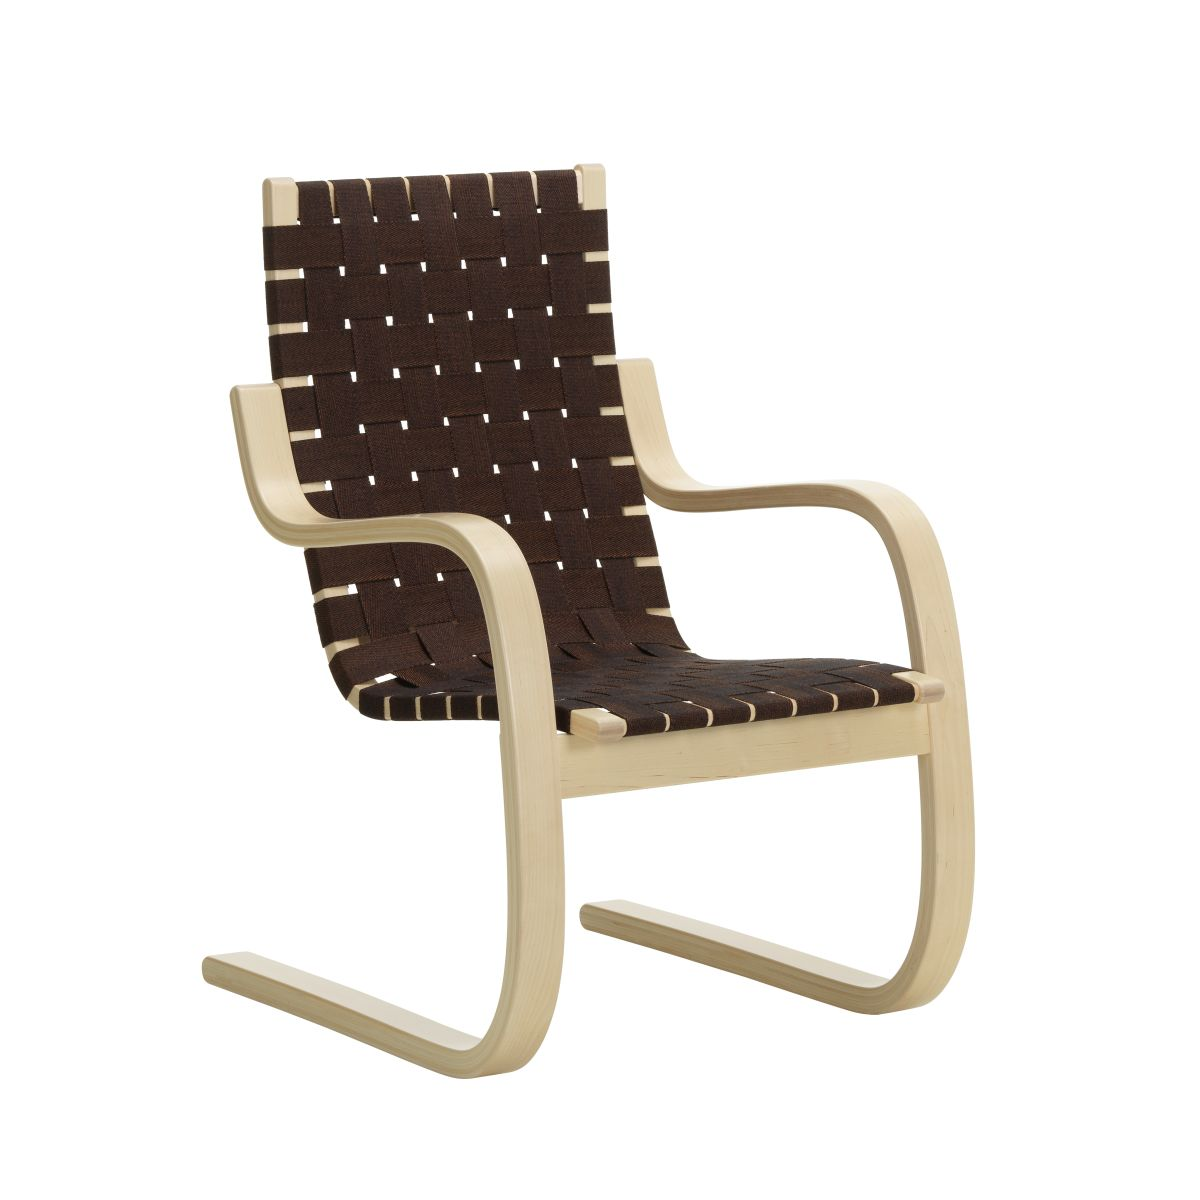 Armchair 406 natural, black/brown webbing_F